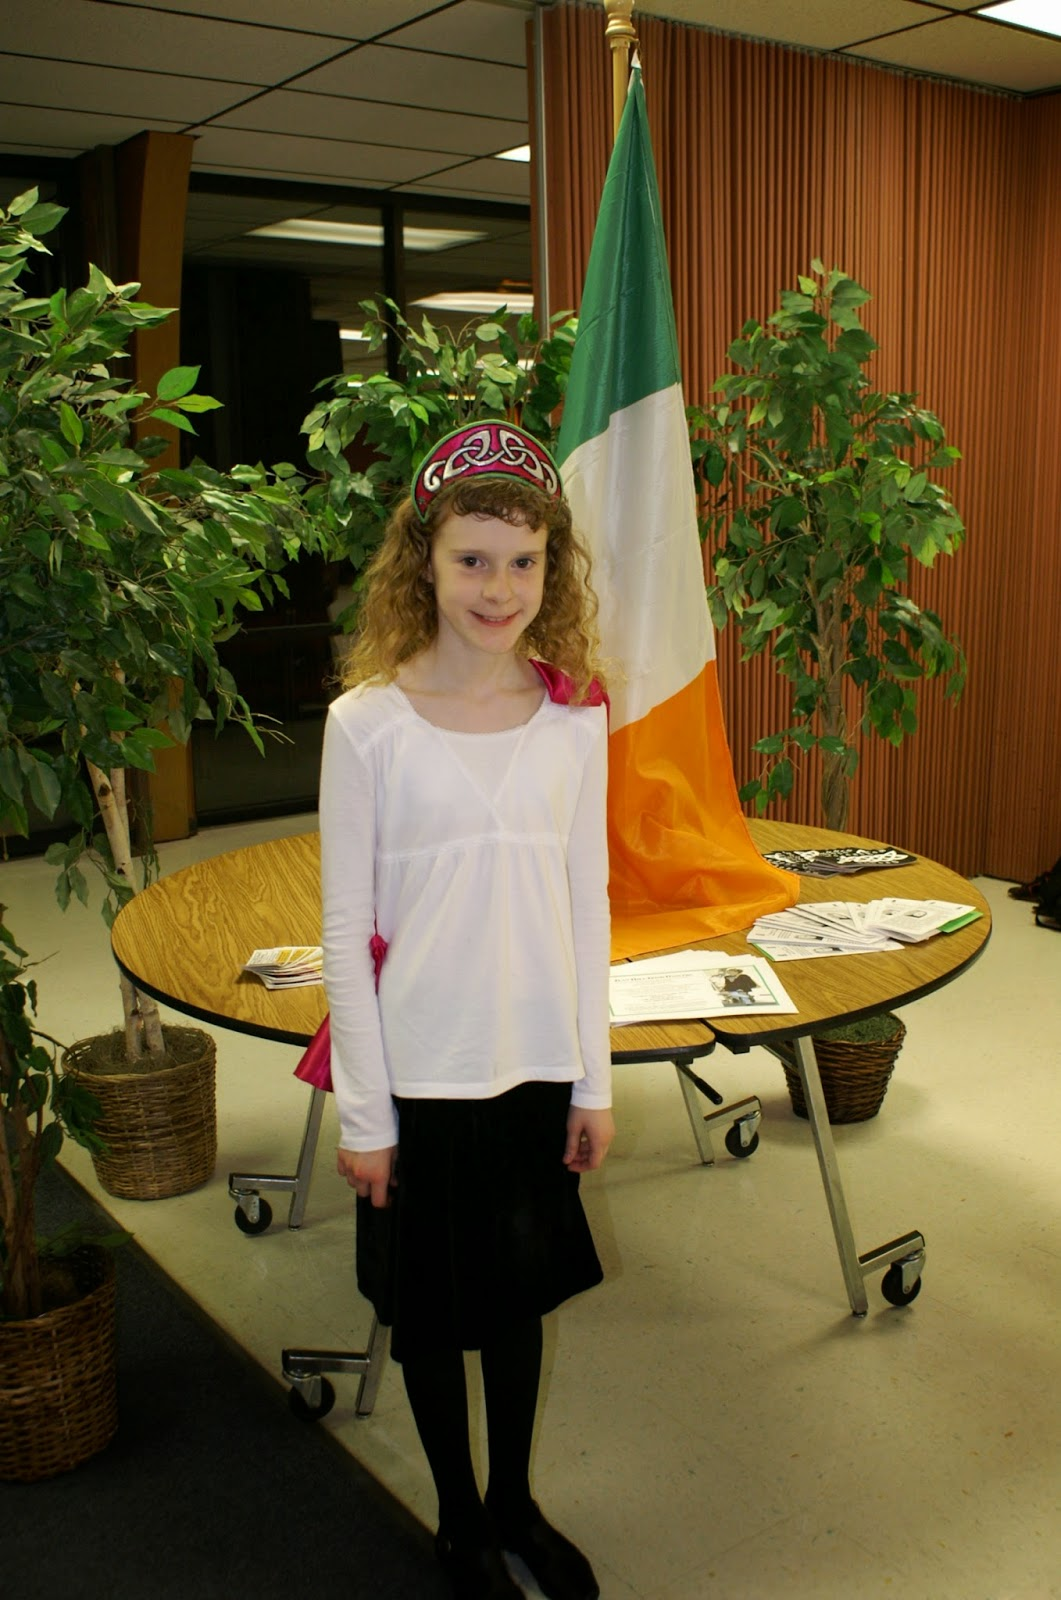 imgsrc siberian mouse I started up Irish Dance in my tween years. I did it for around a year and  loved it! :D A lot of fun!